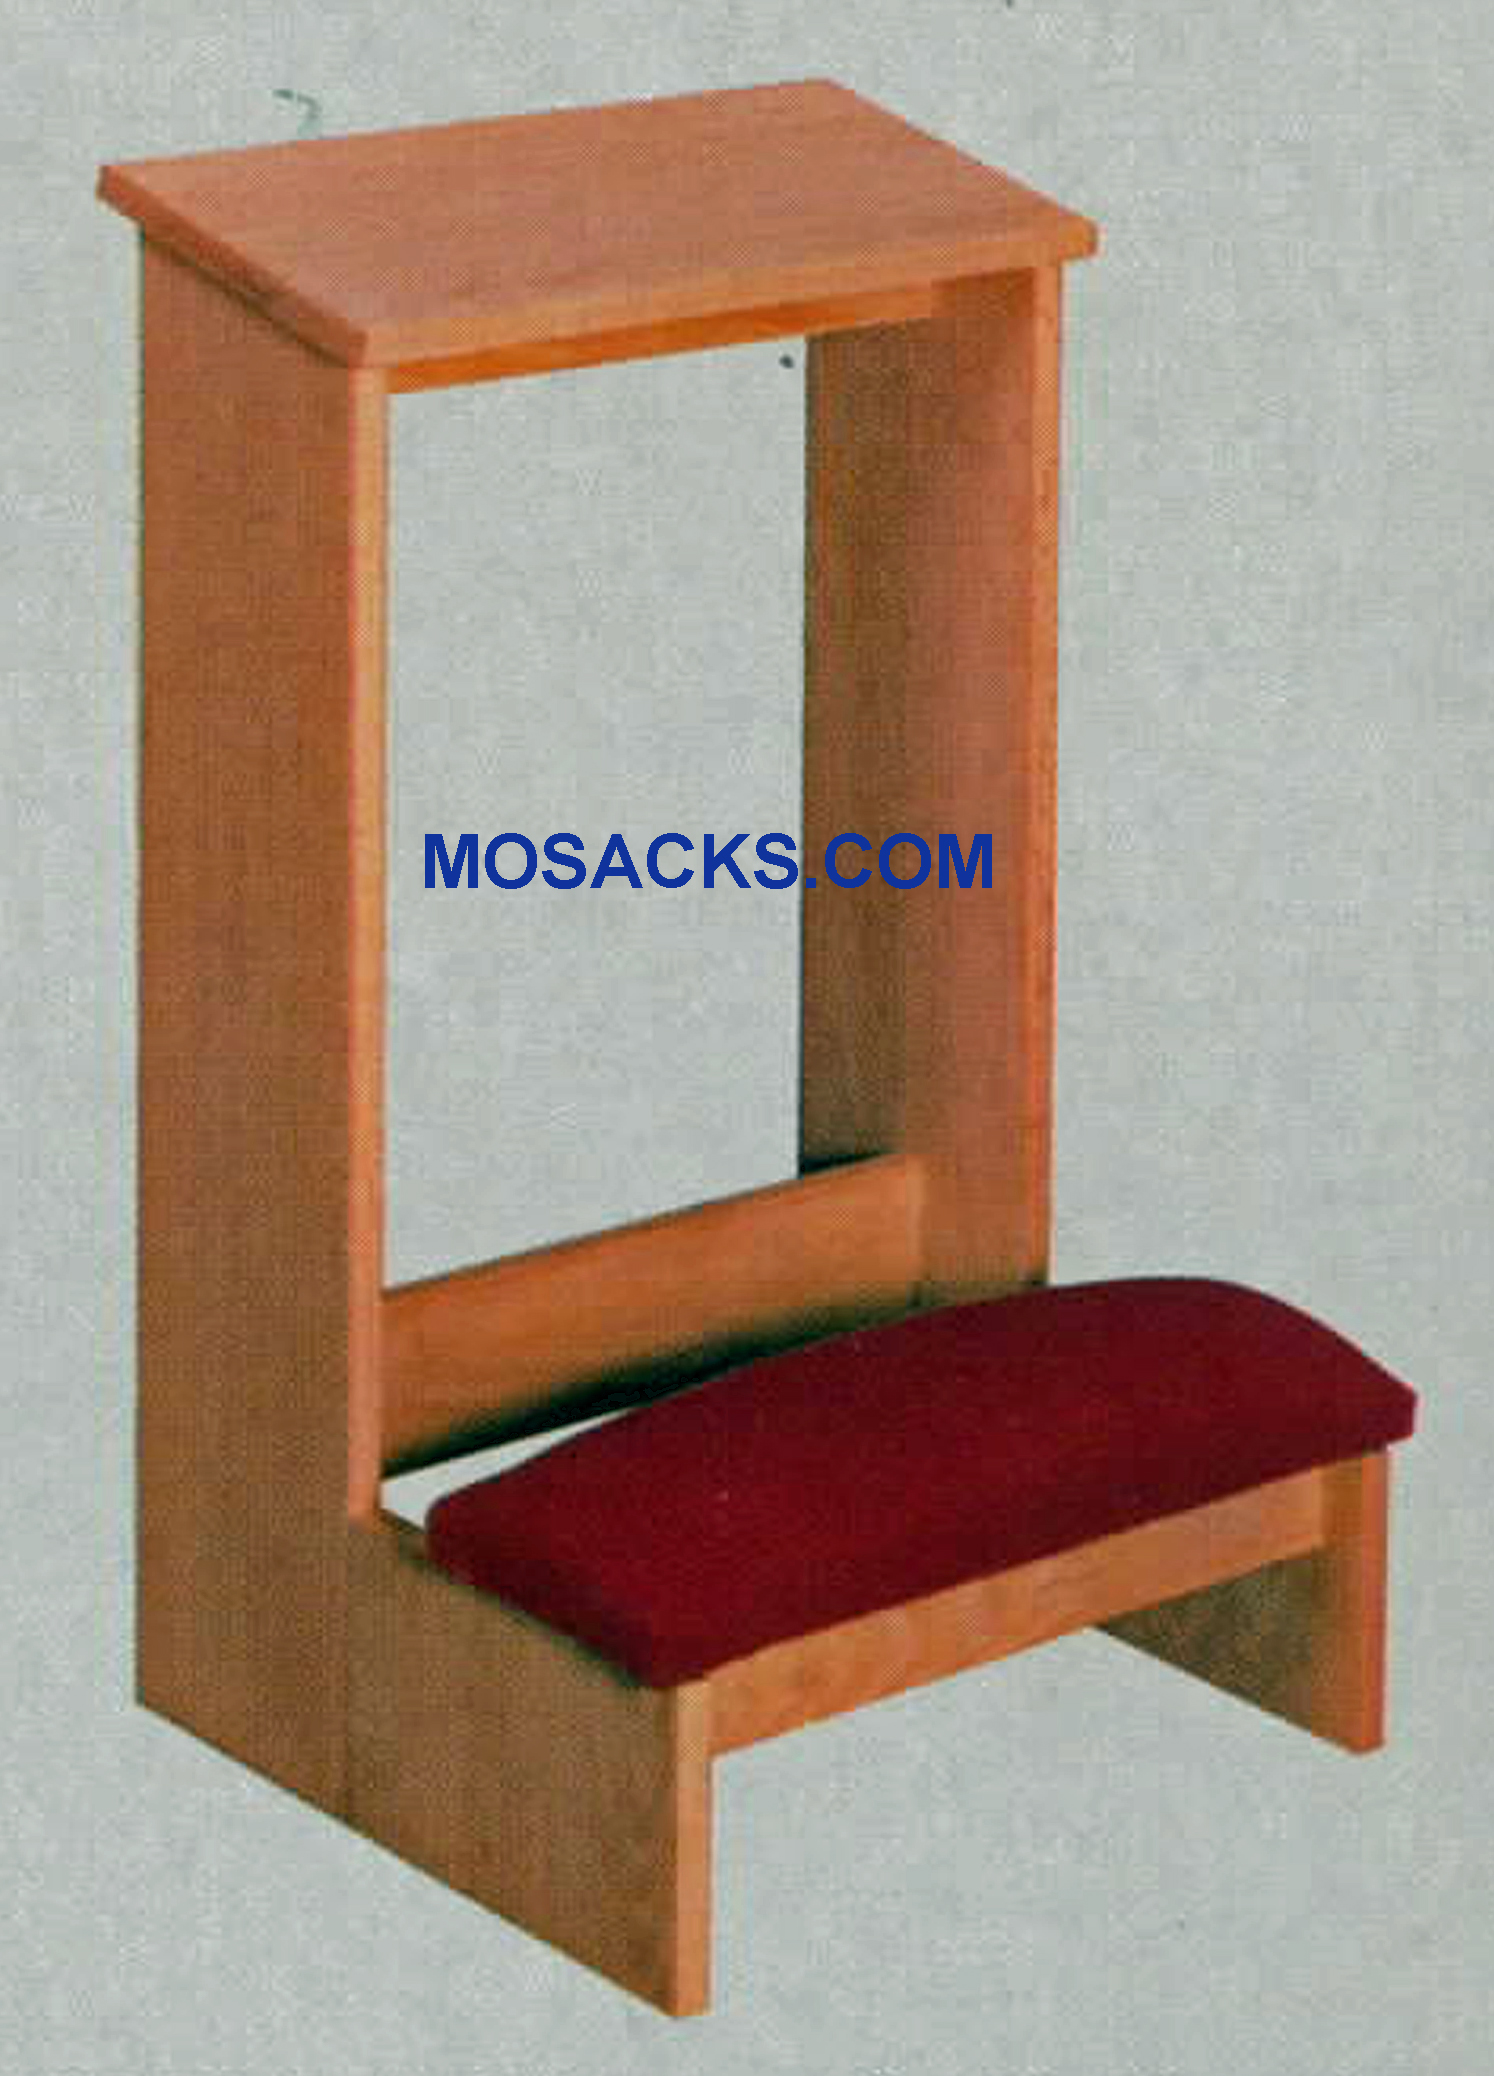 "Unfinished W Brand Prie Dieu Kneeler with upholstered kneeler & a shelf 19"" w x 19""d x 30"" h #2304. This Prie Dieu Kneeler is unfinished with a slanted shelf for arm comfort and upholstered kneeler."